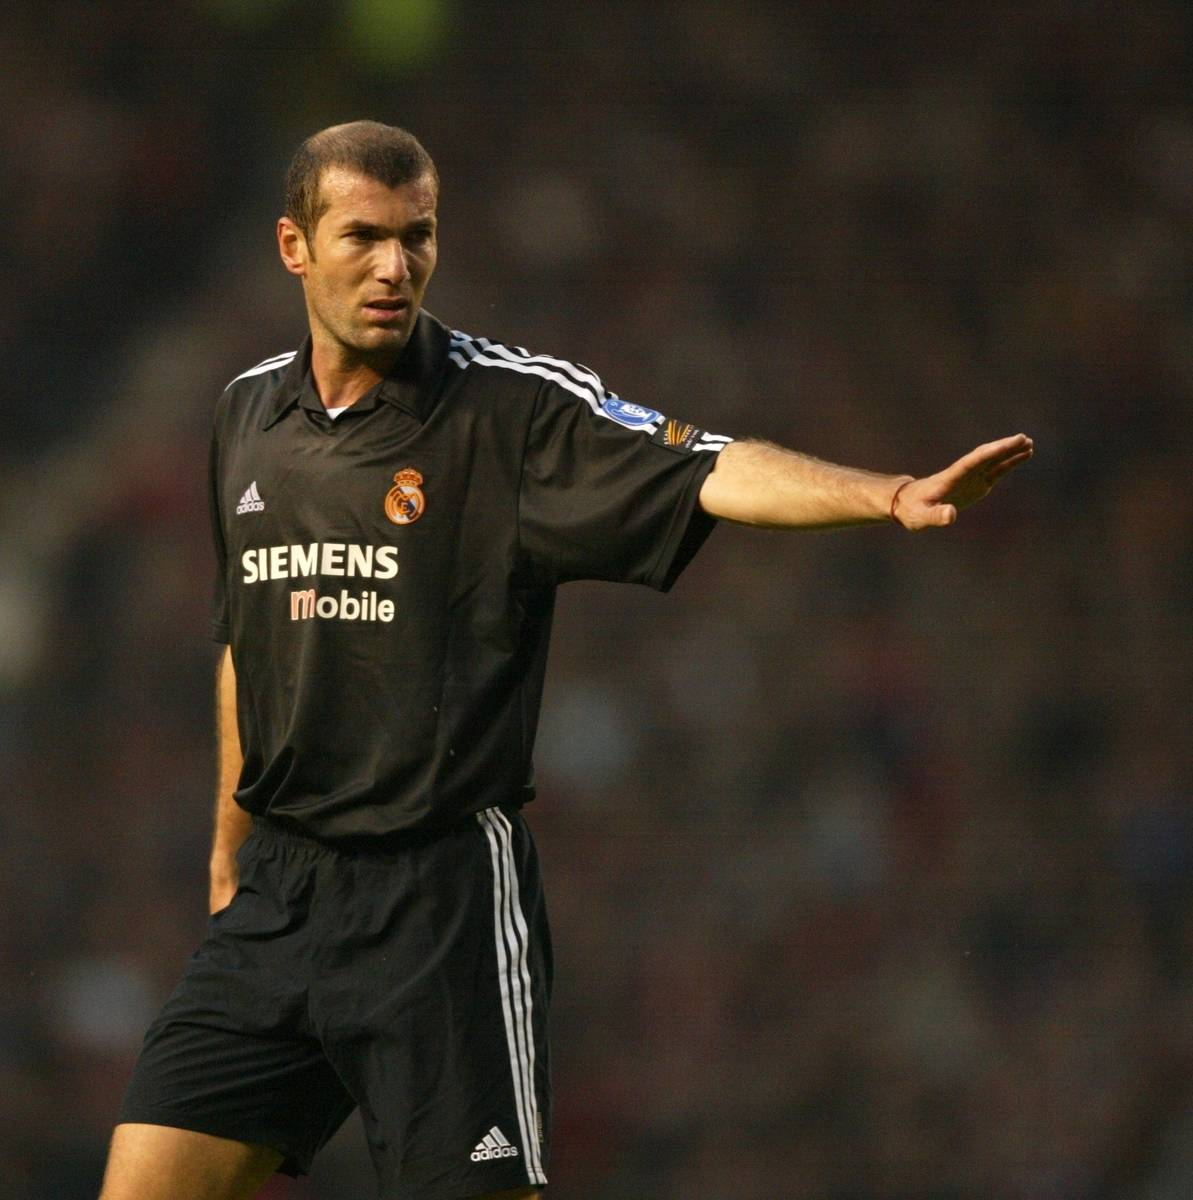 MANCHESTER, ENGLAND - Wednesday, April 23, 2003: Real Madrid's Zinedine Zidane in action against Manchester United during the UEFA Champions League Quarter Final 2nd Leg match at Old Trafford. (Pic by David Rawcliffe/Propaganda)